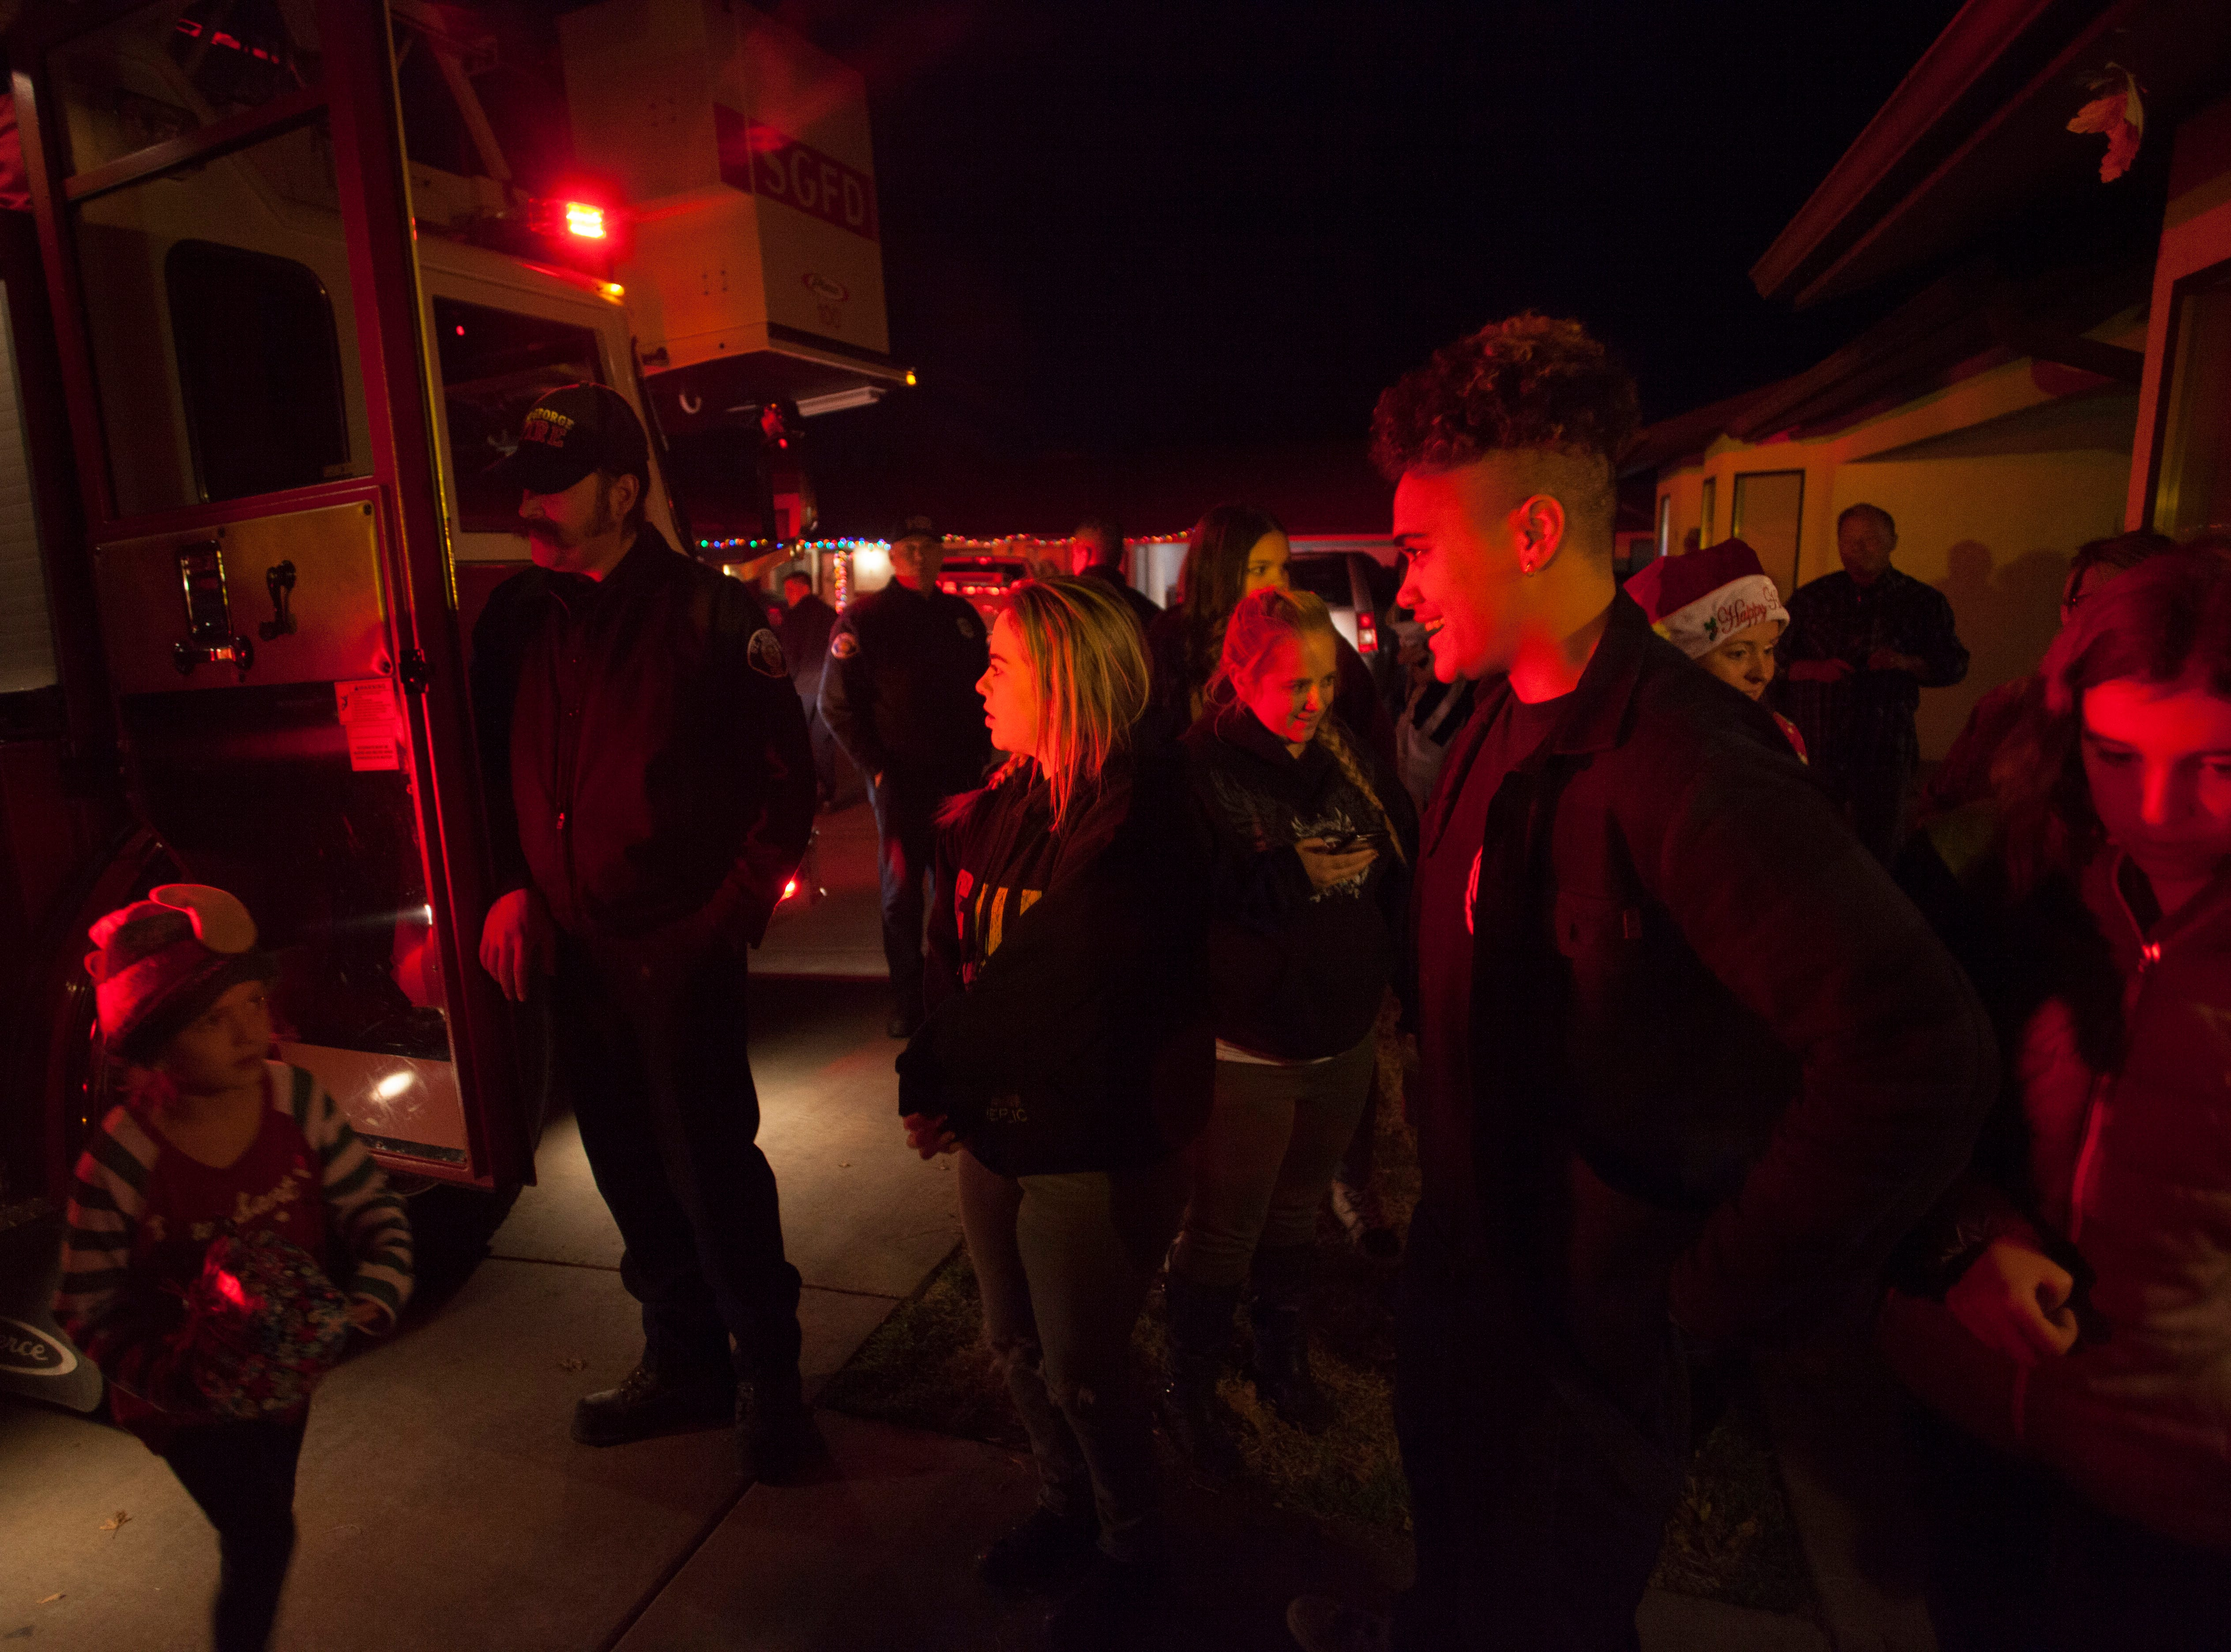 Members of the St. George Fire Department and community volunteers deliver gifts as part of the Angel Tree Project Monday, Dec. 17, 2018.